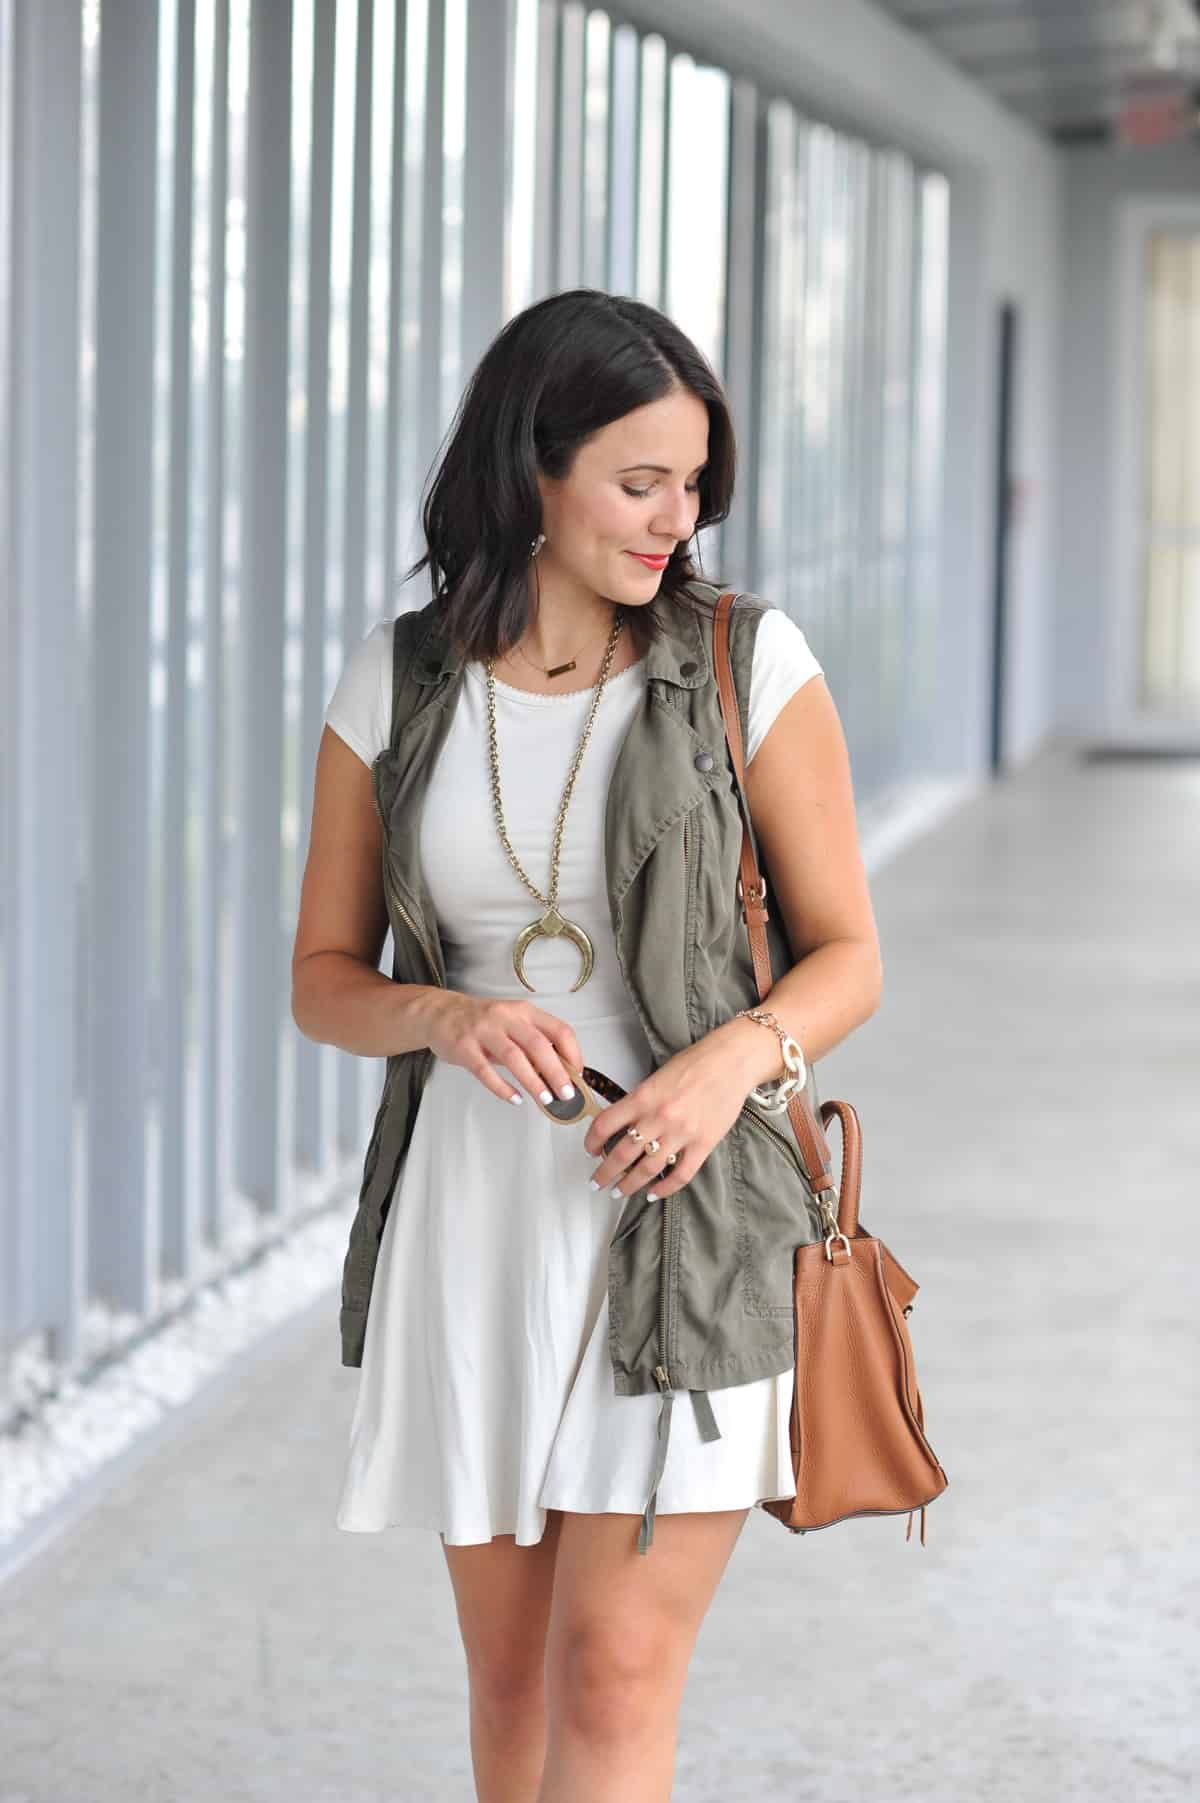 how to style a vest for summer - My Style Vita @mystylevita - 29